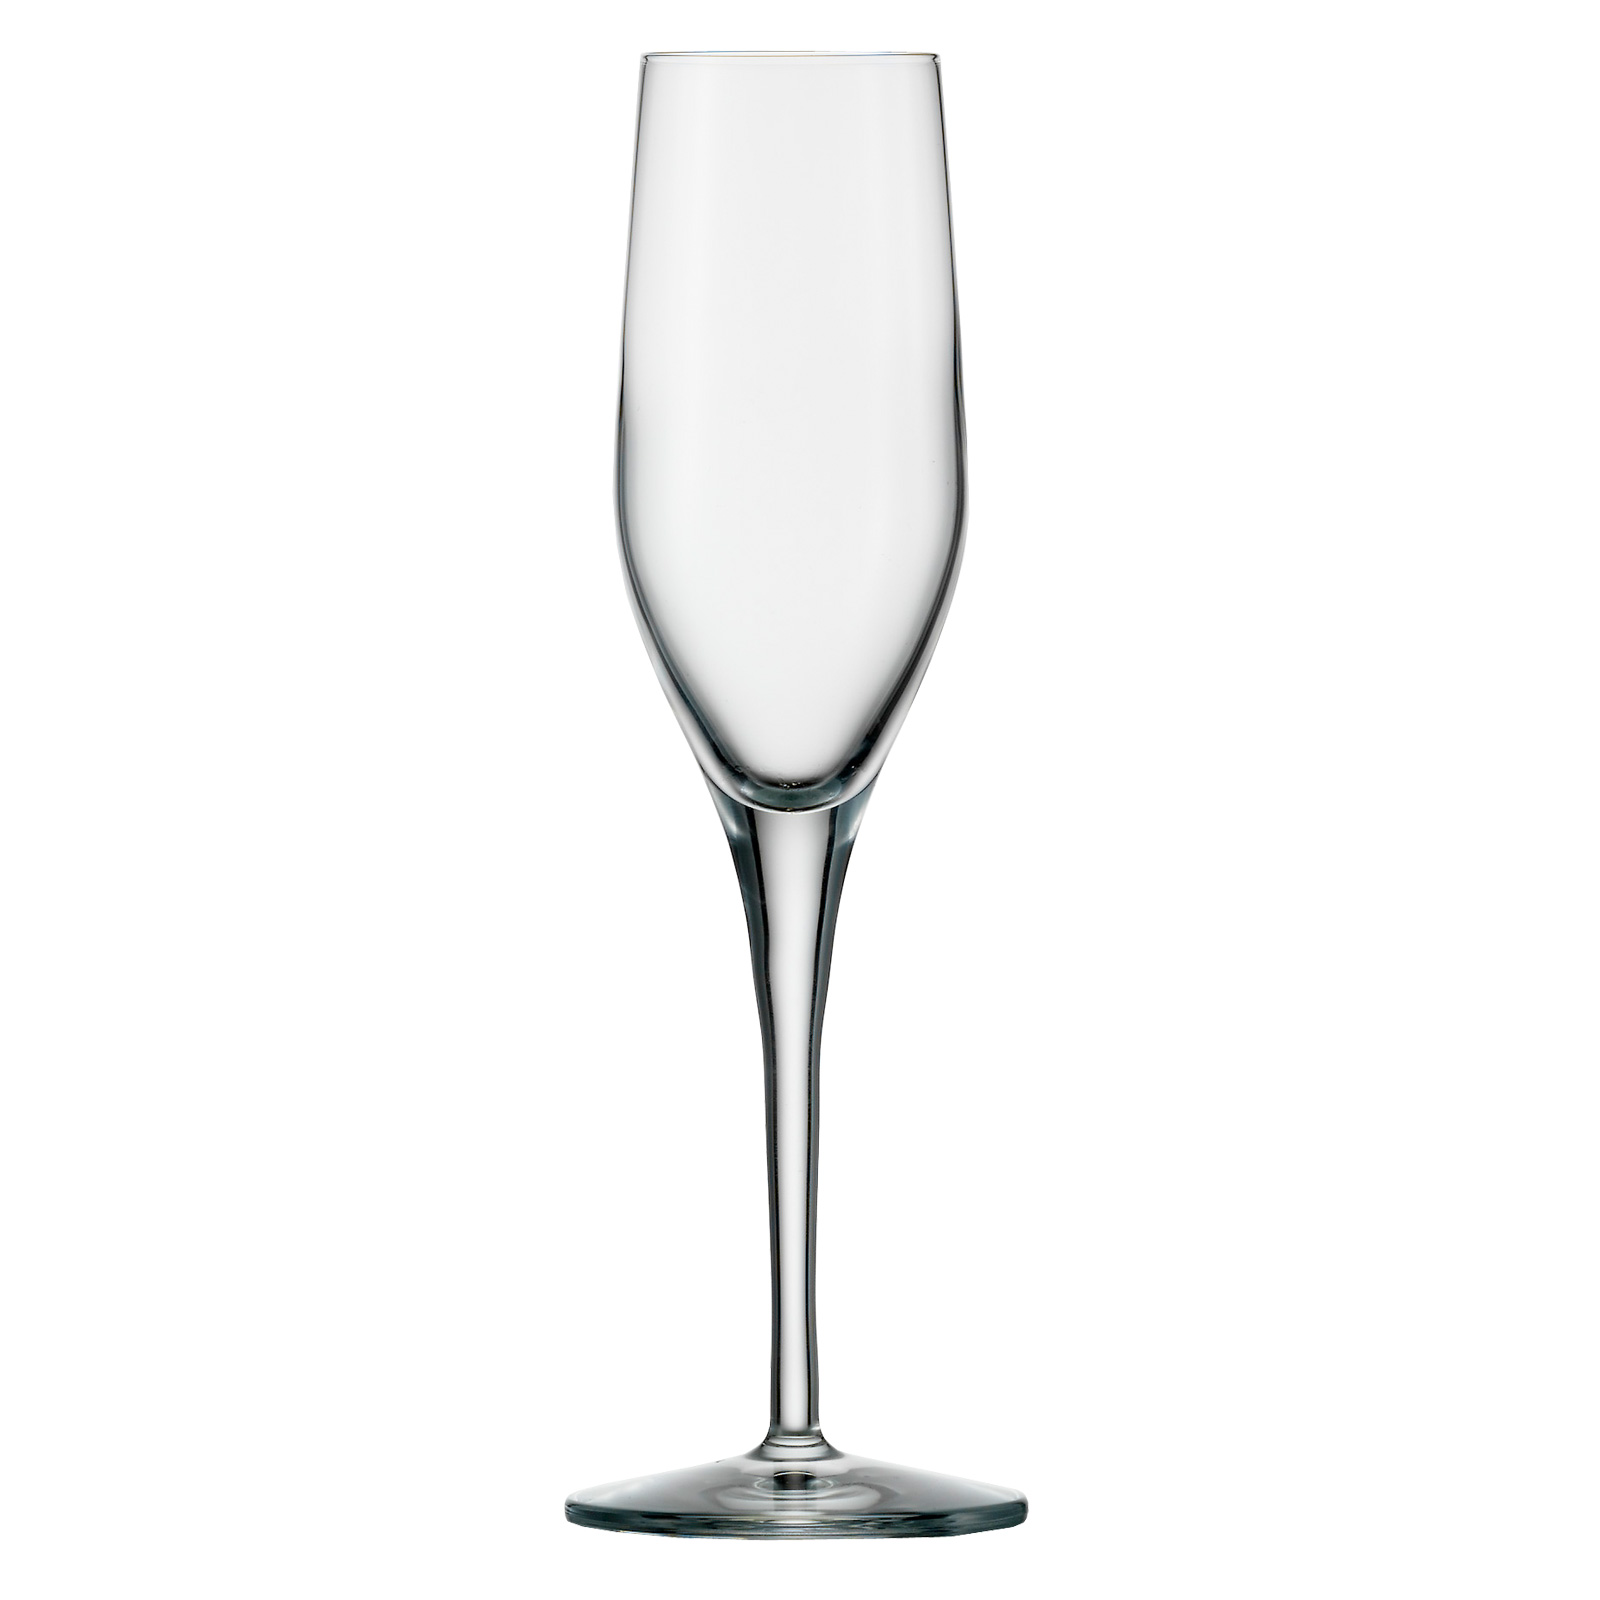 Set of 6 Exquisit Champagne Flutes by Stolzle